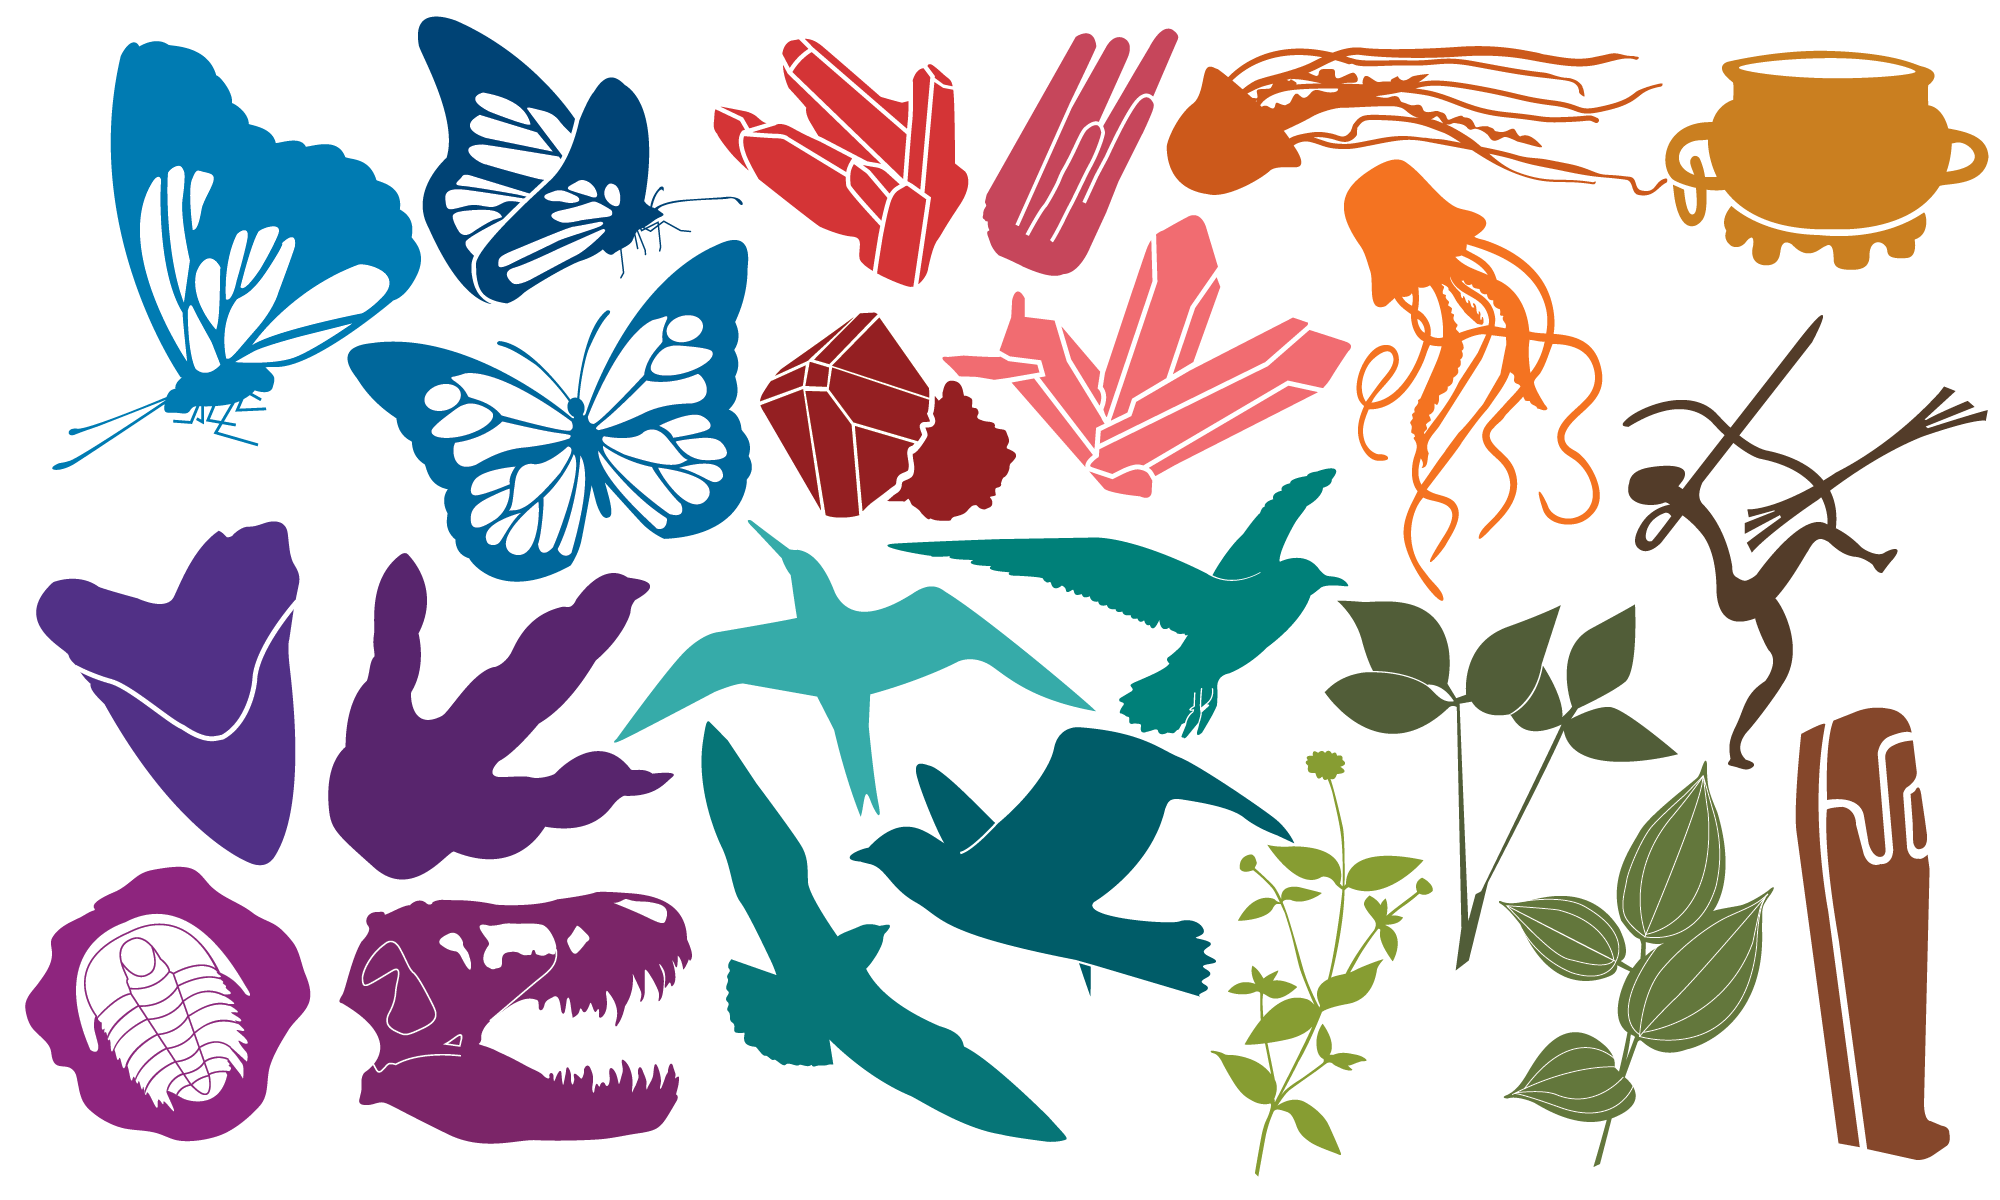 Project image 1 for Supergraphics, National Museum of Natural History